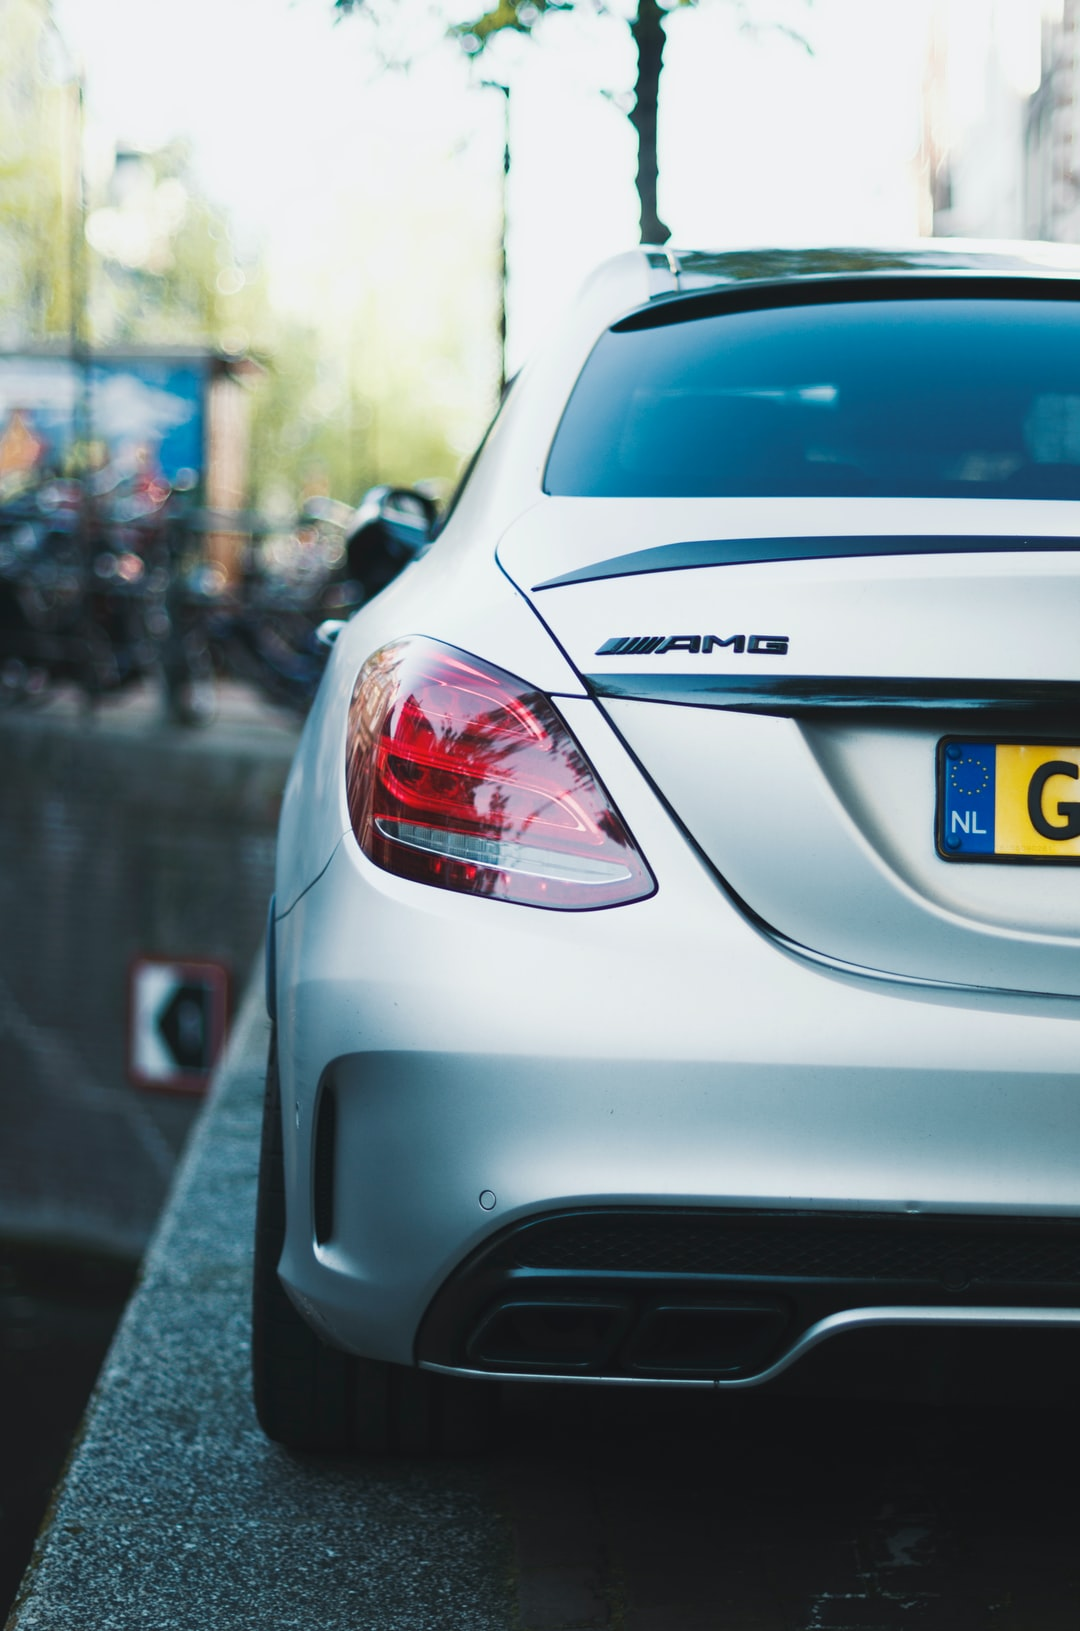 German Car Pictures Download Free Images On Unsplash